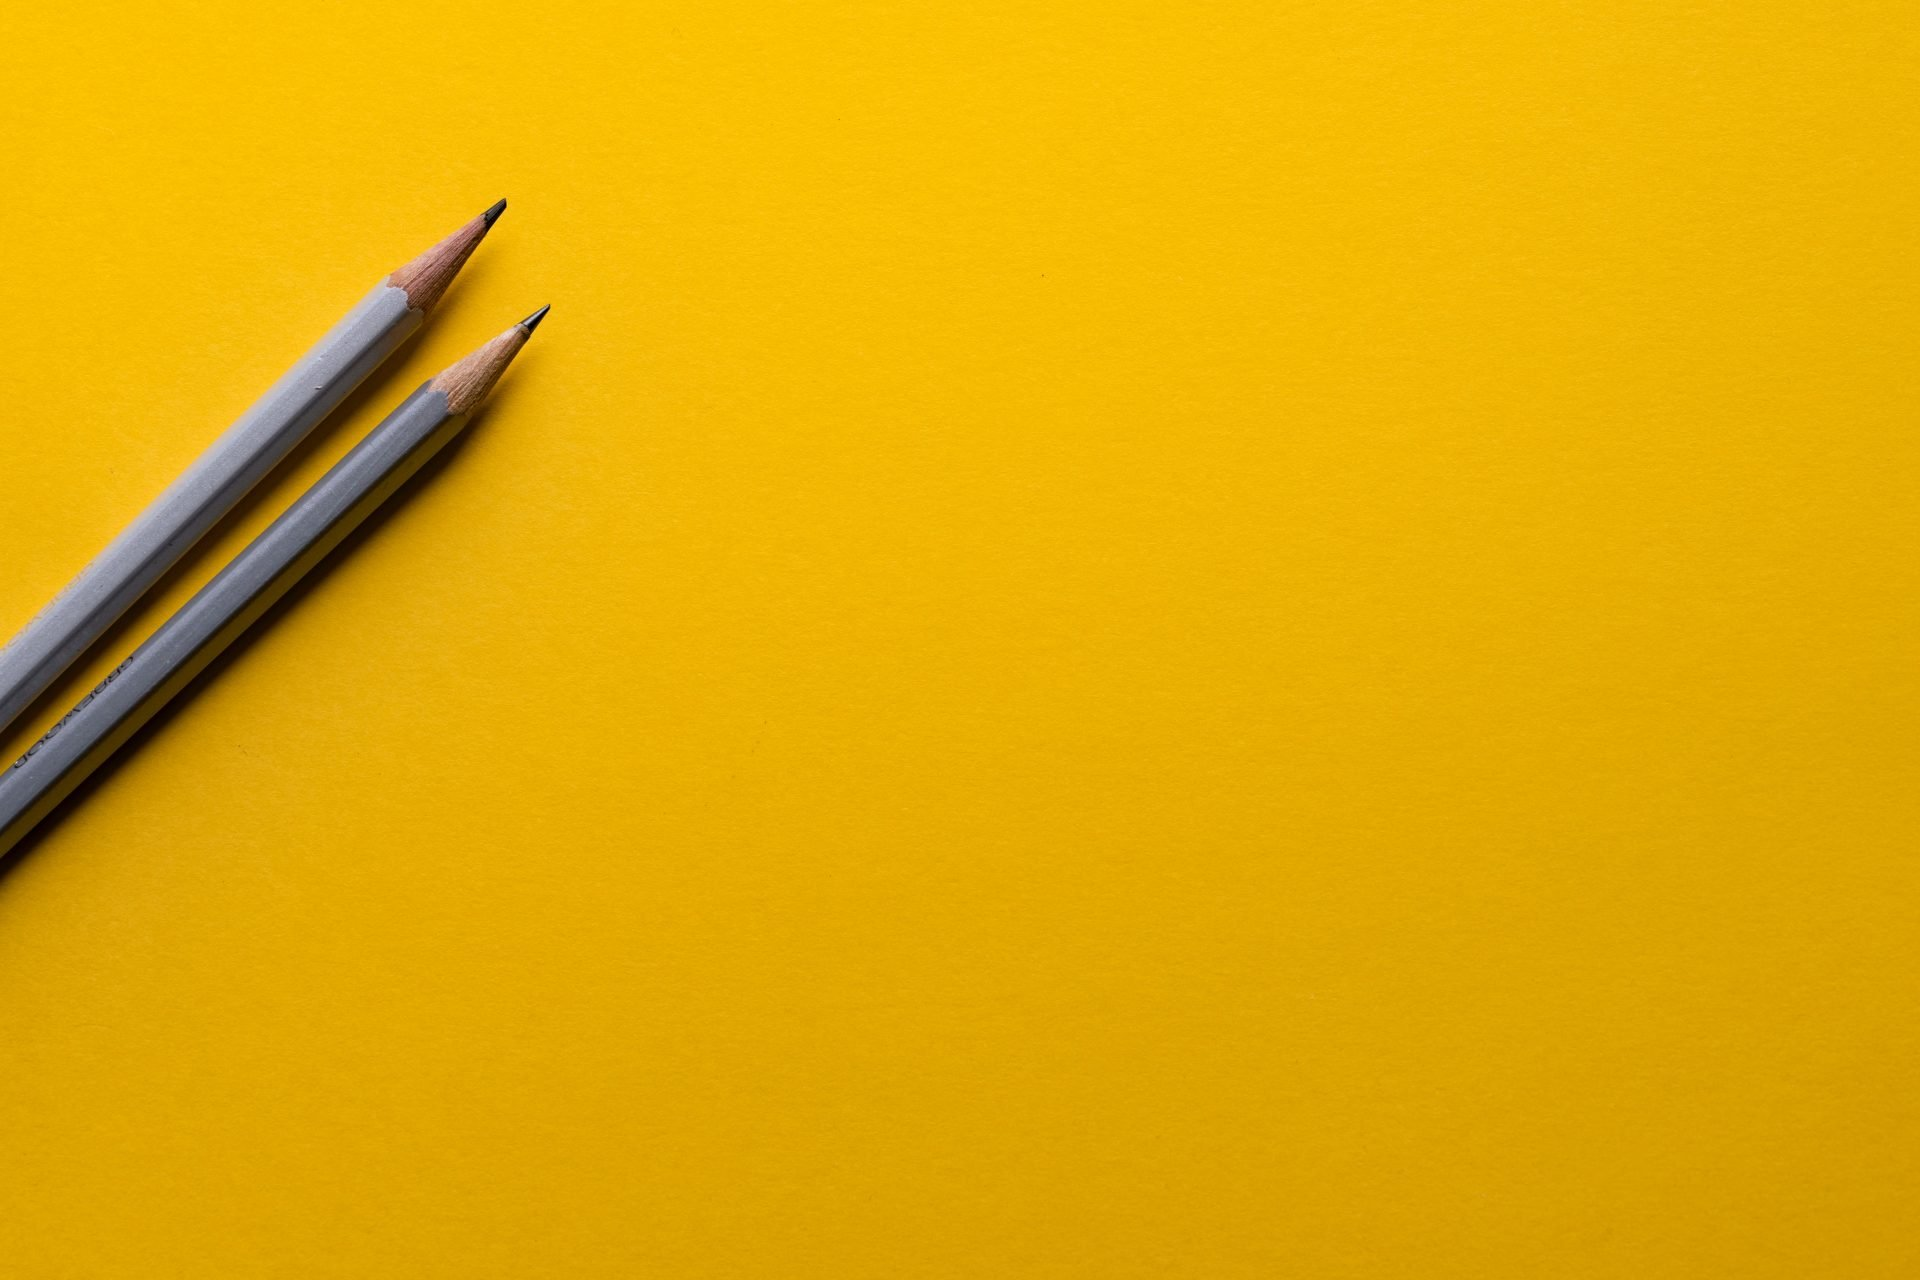 Two grey sharpened pencils on a yellow background